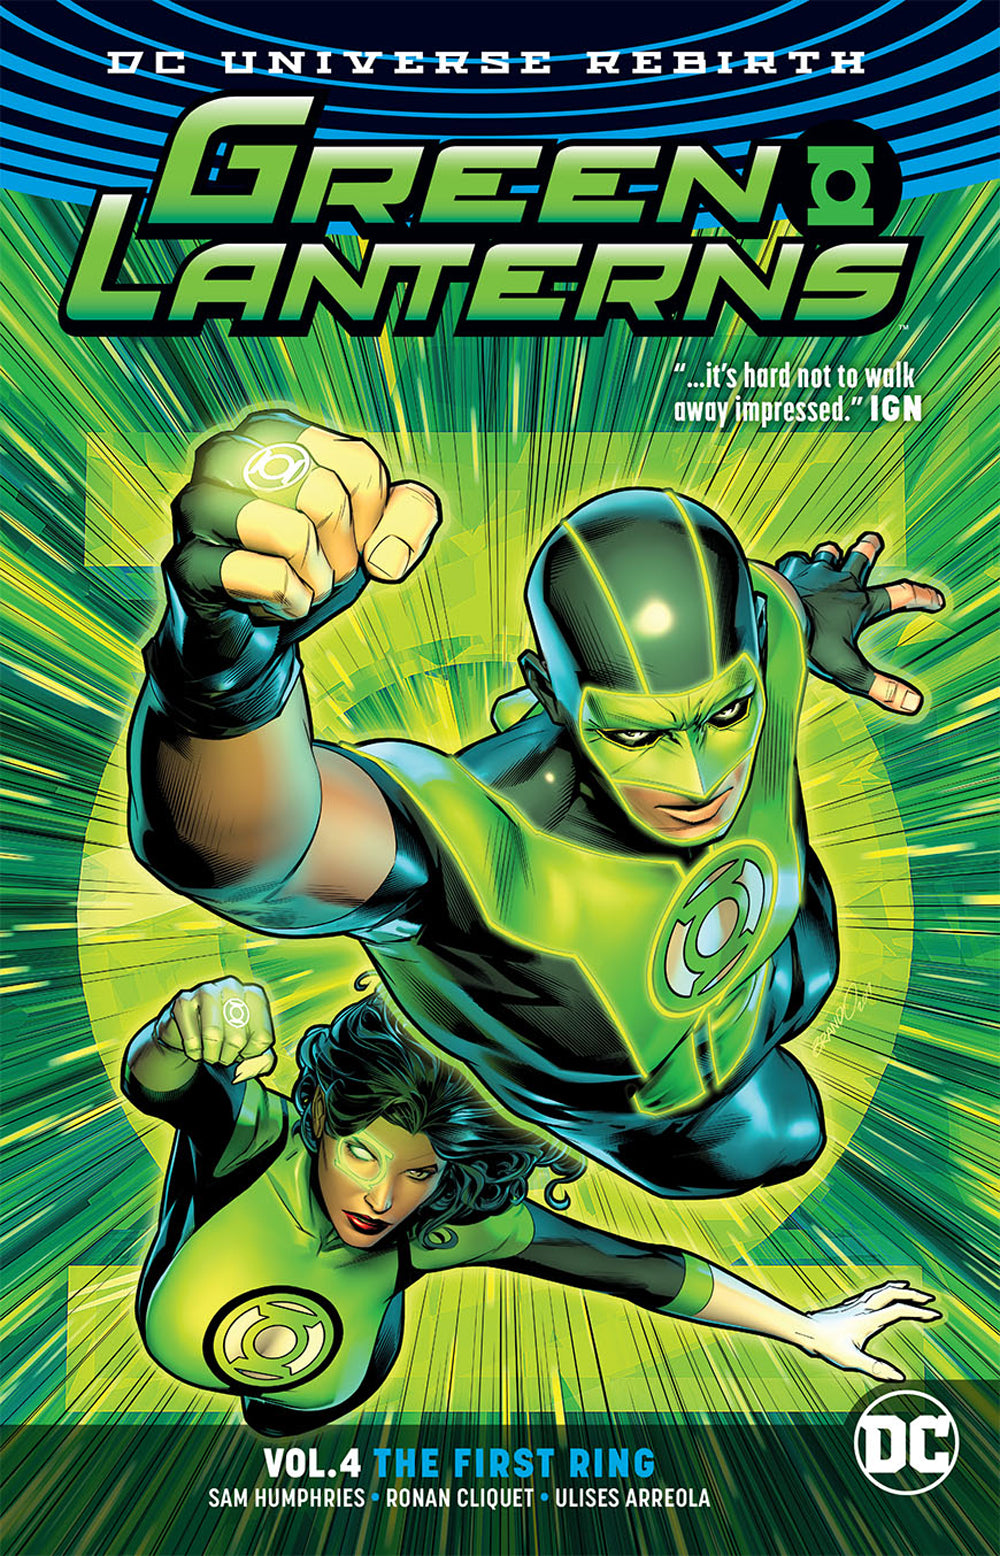 GREEN LANTERNS TP VOL 04 THE FIRST RINGS (REBIRTH) | Game Master's Emporium (The New GME)